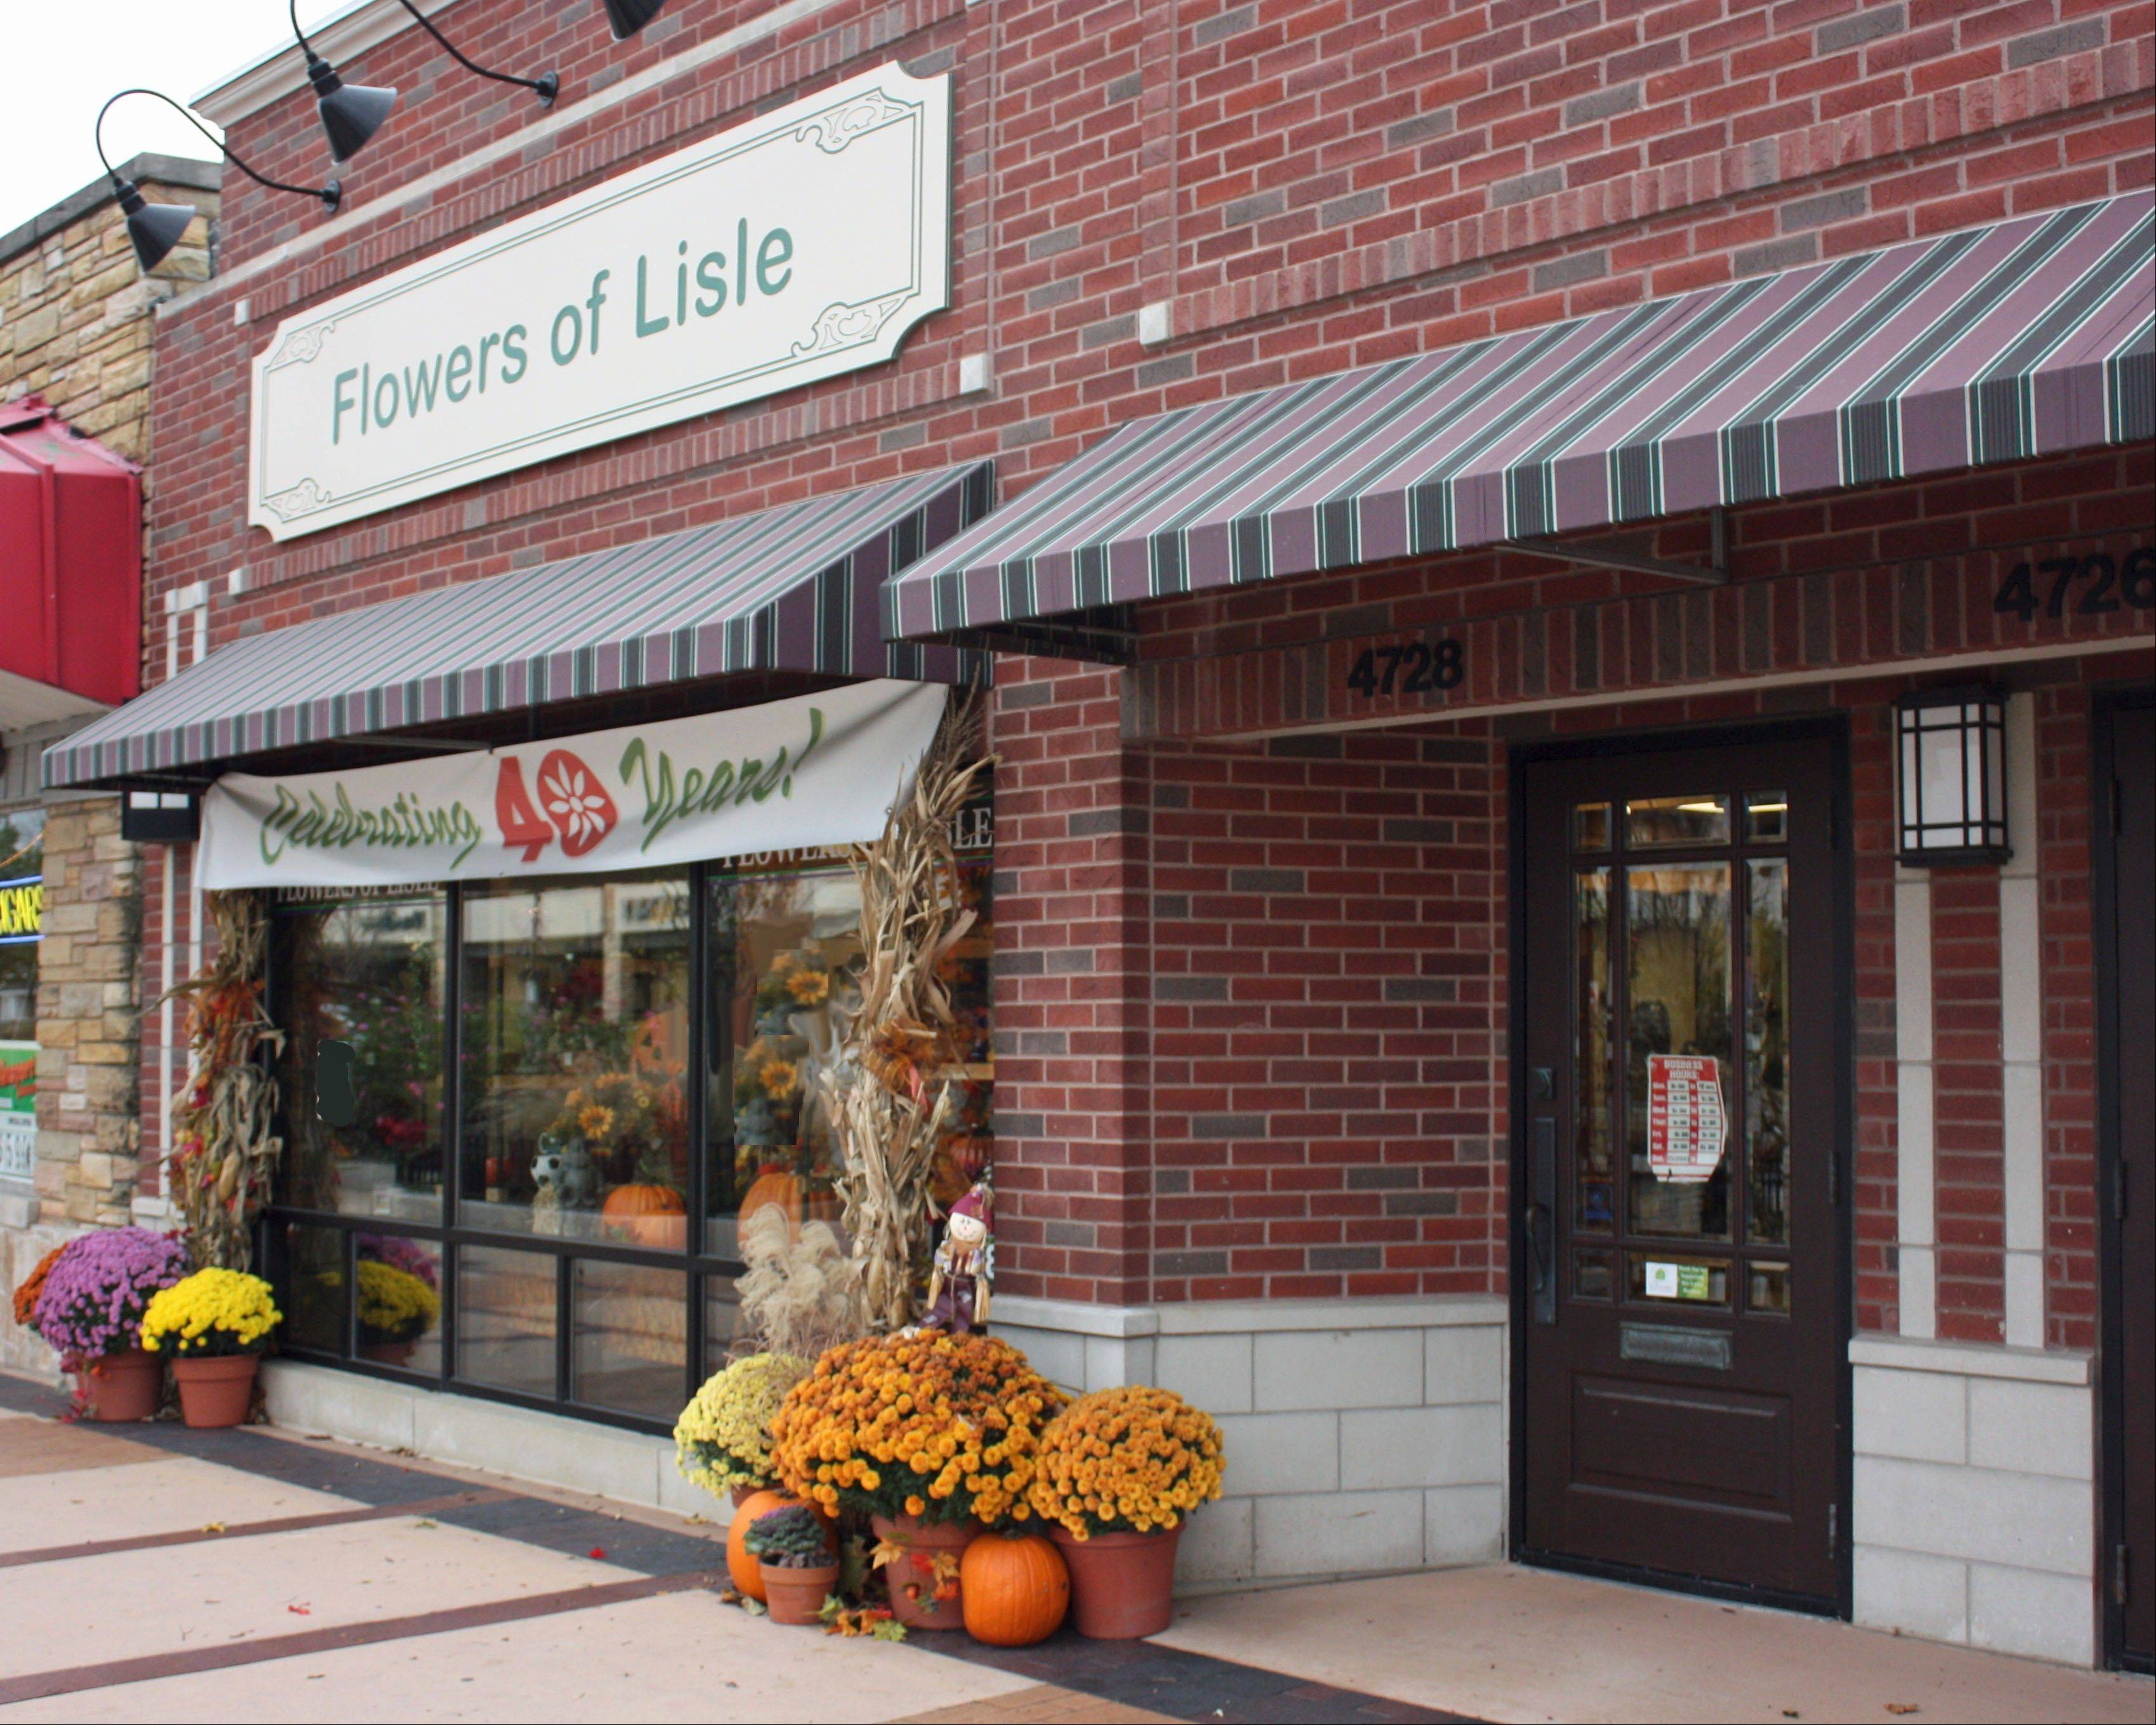 The facade of Flowers of Lisle has changed over the years, but it�s been a mainstay of Main Street for 40 years.